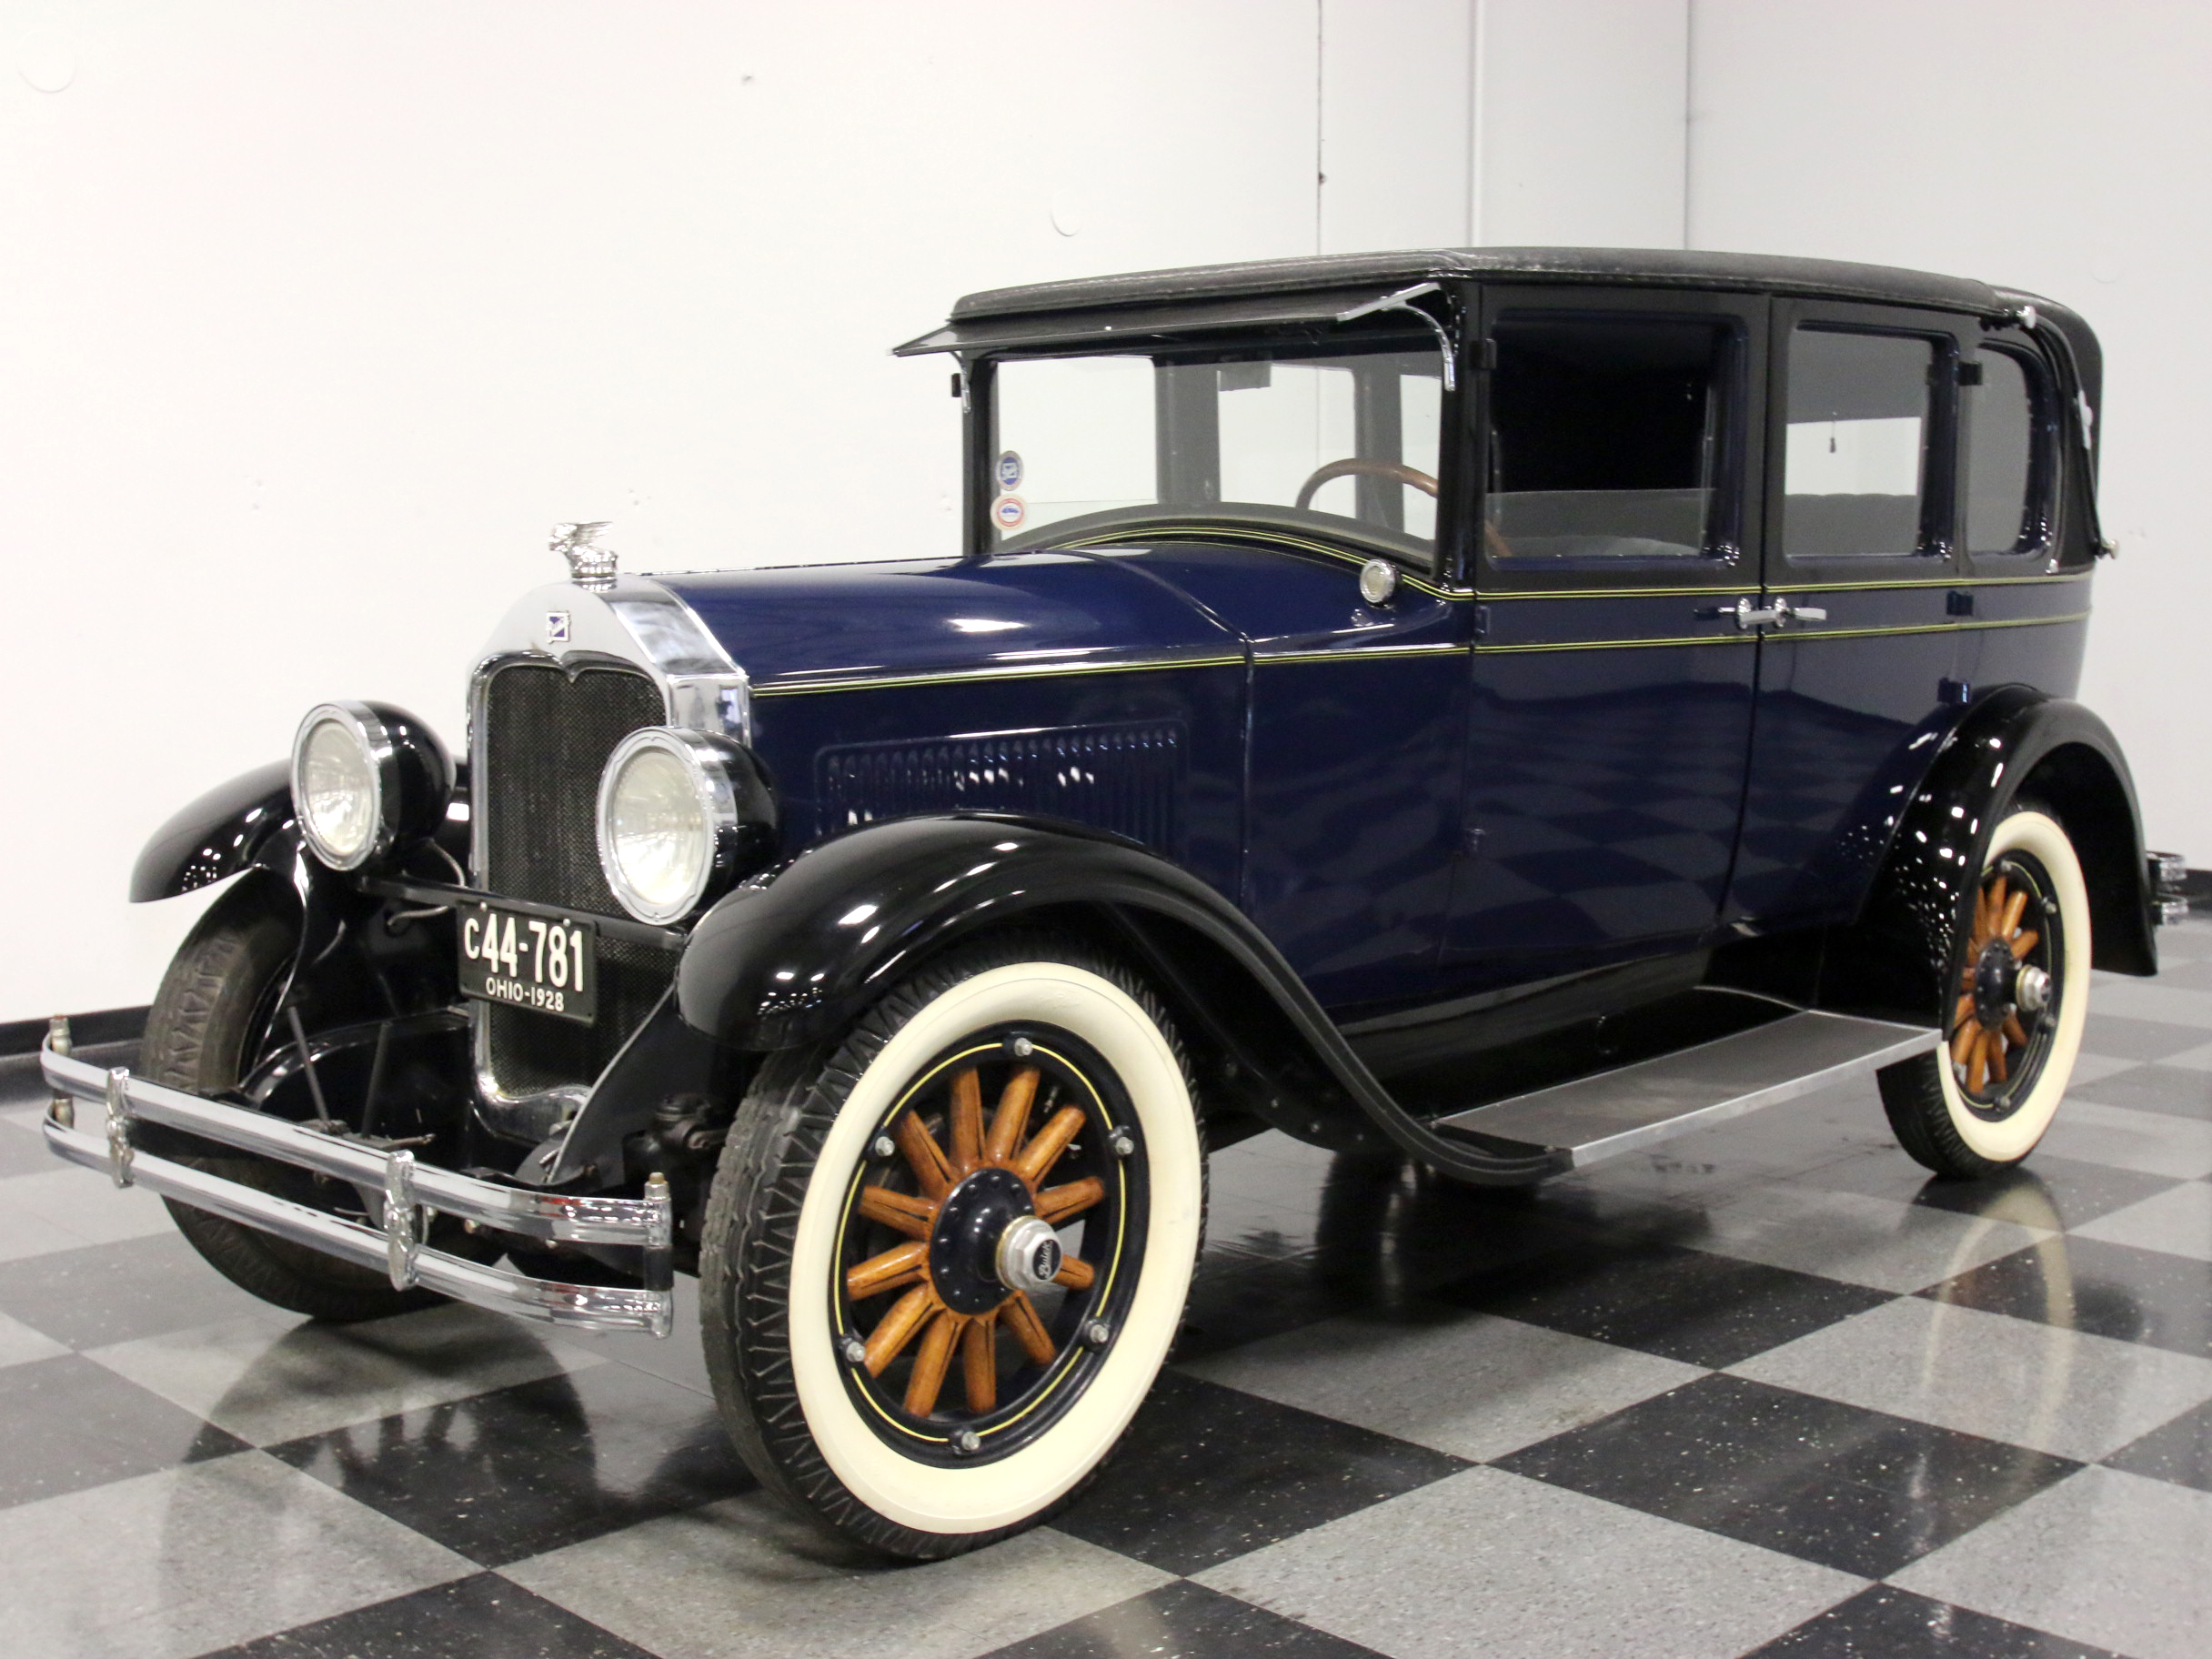 1928 Buick Town Brougham Streetside Classics The Nation S Top Consignment Dealer Of Classic